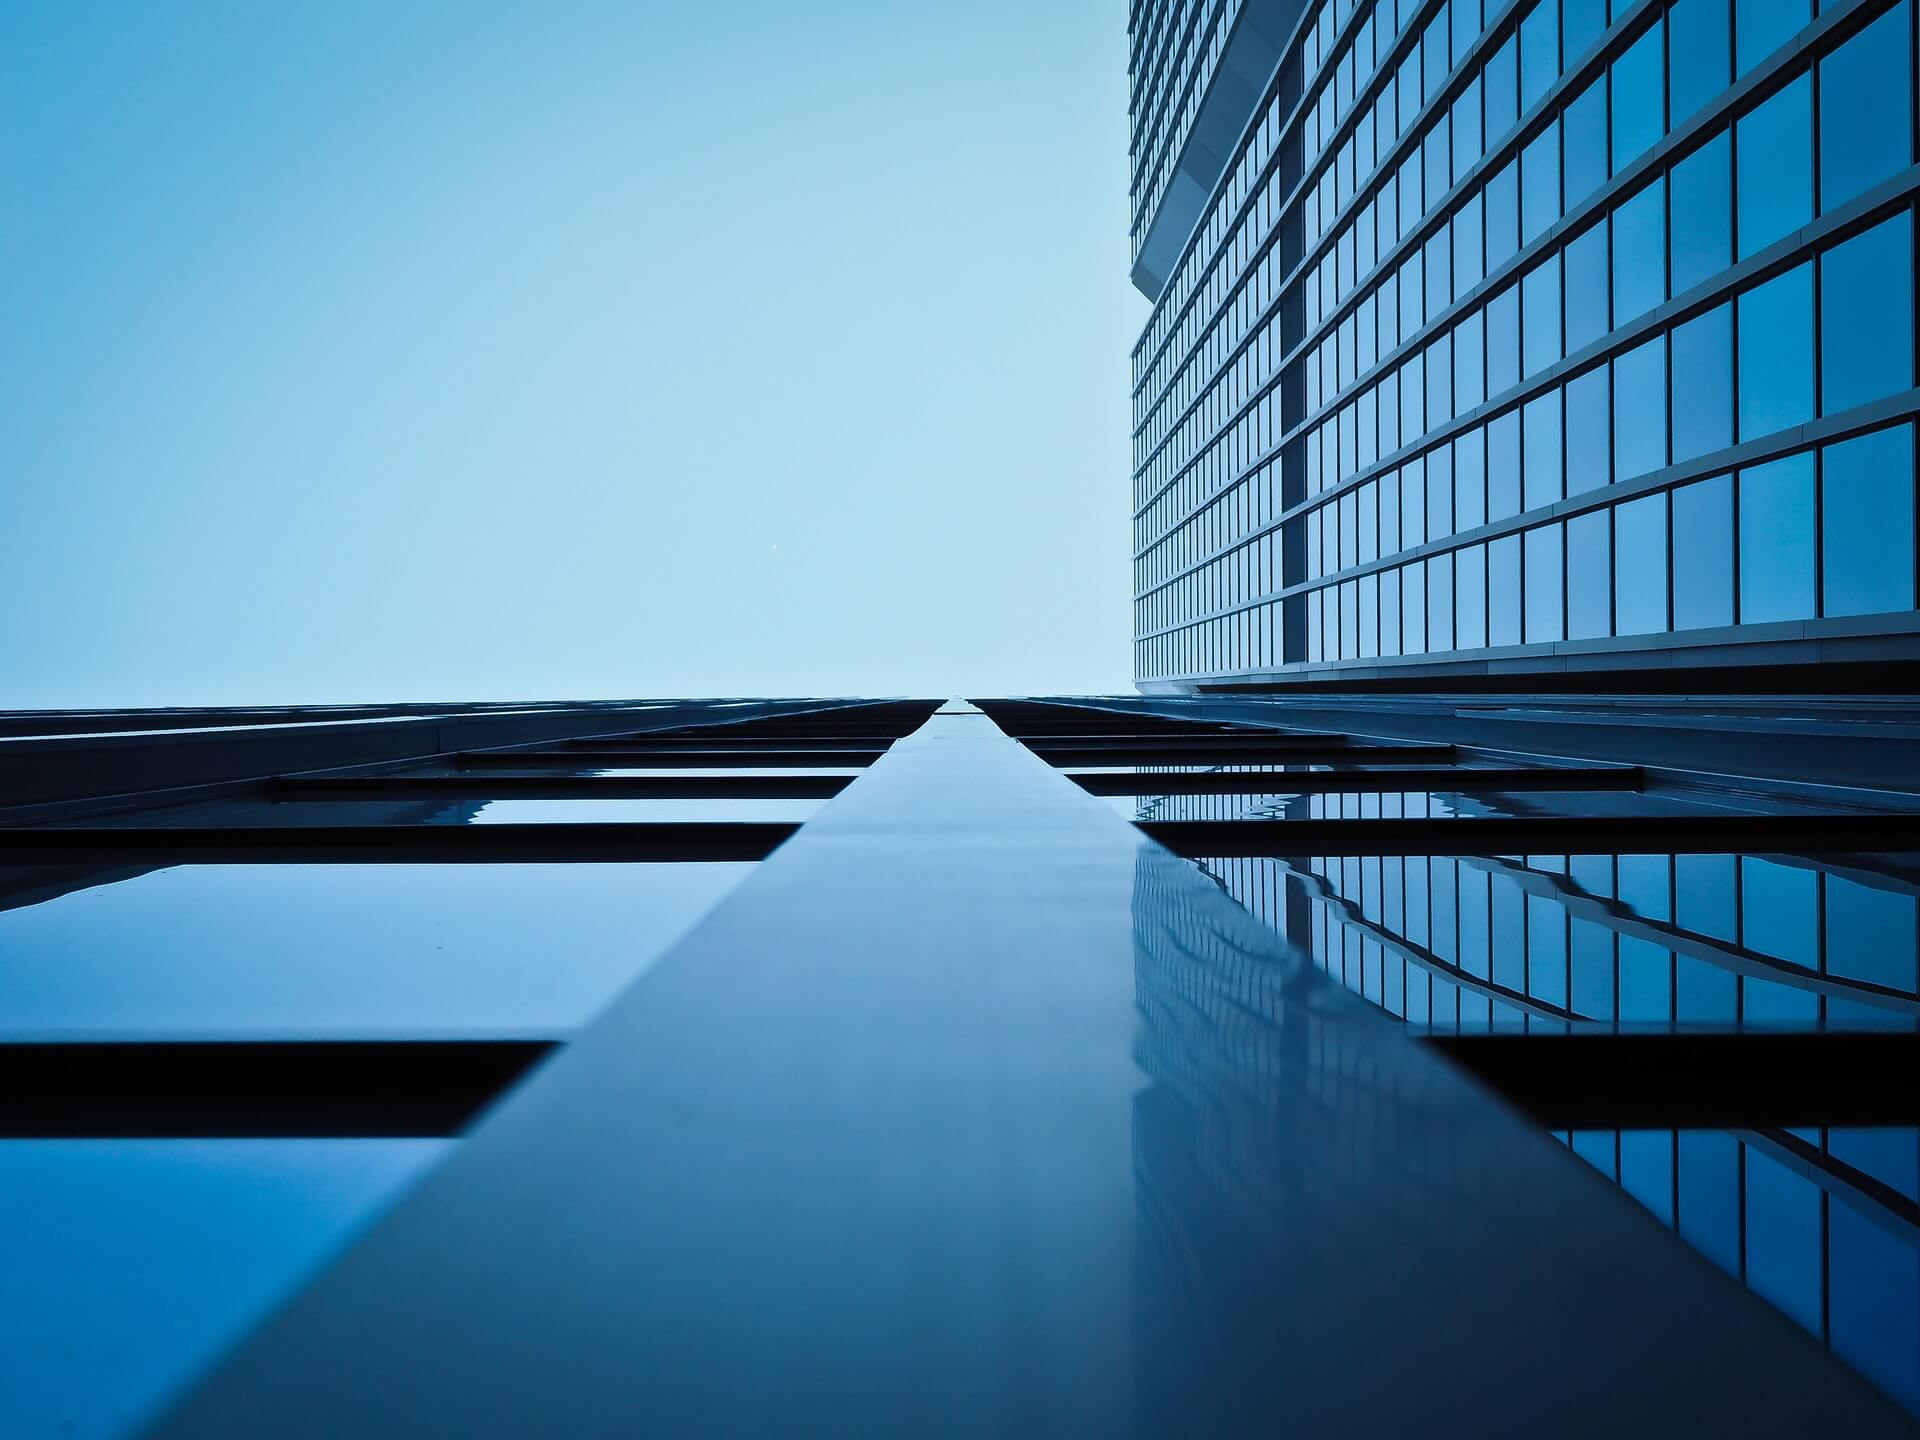 Angled view from below of an office building